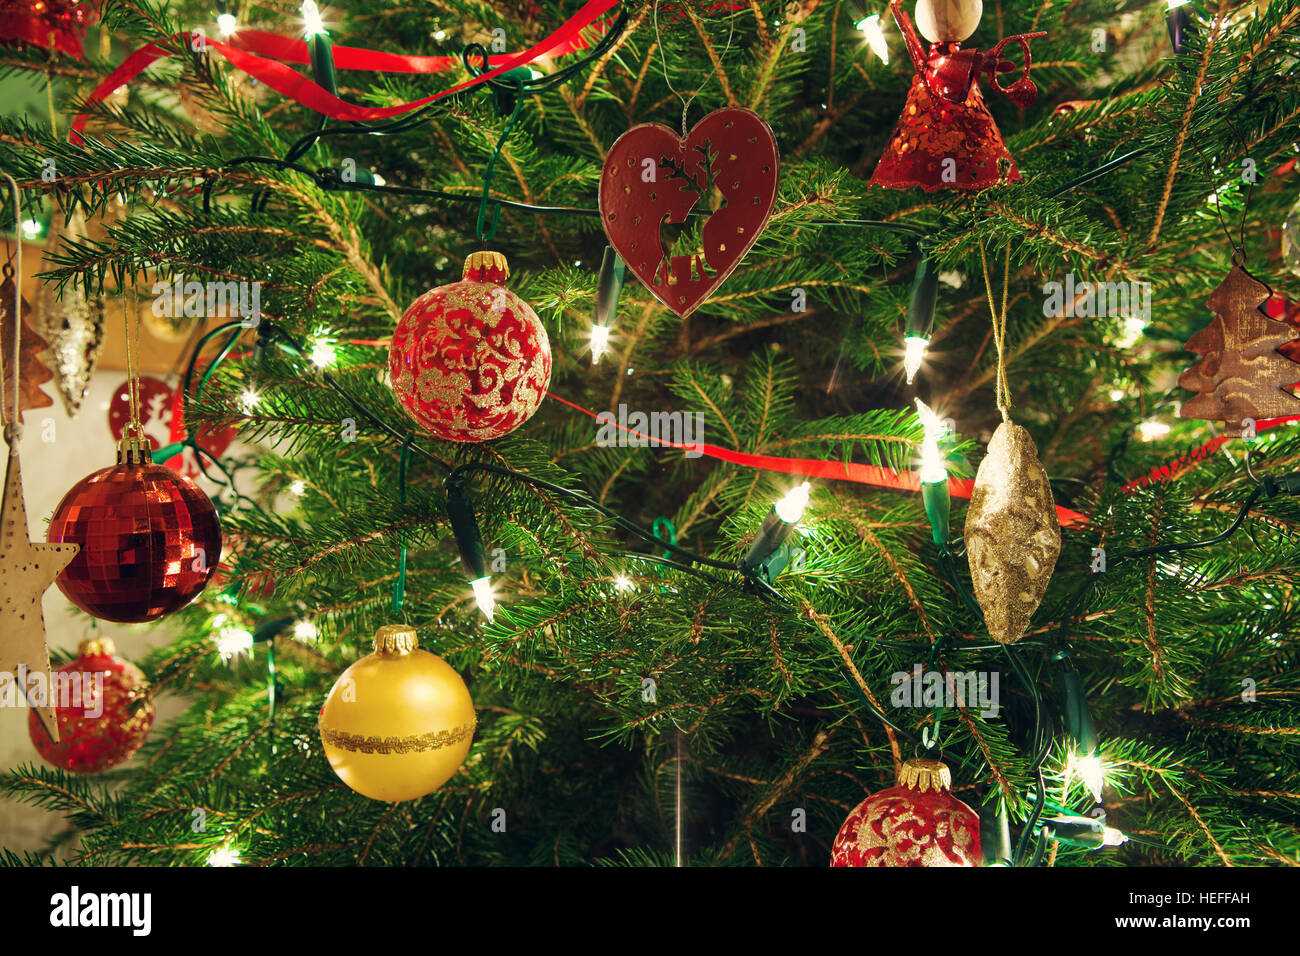 Christmas tree decorations with baubles - Stock Image